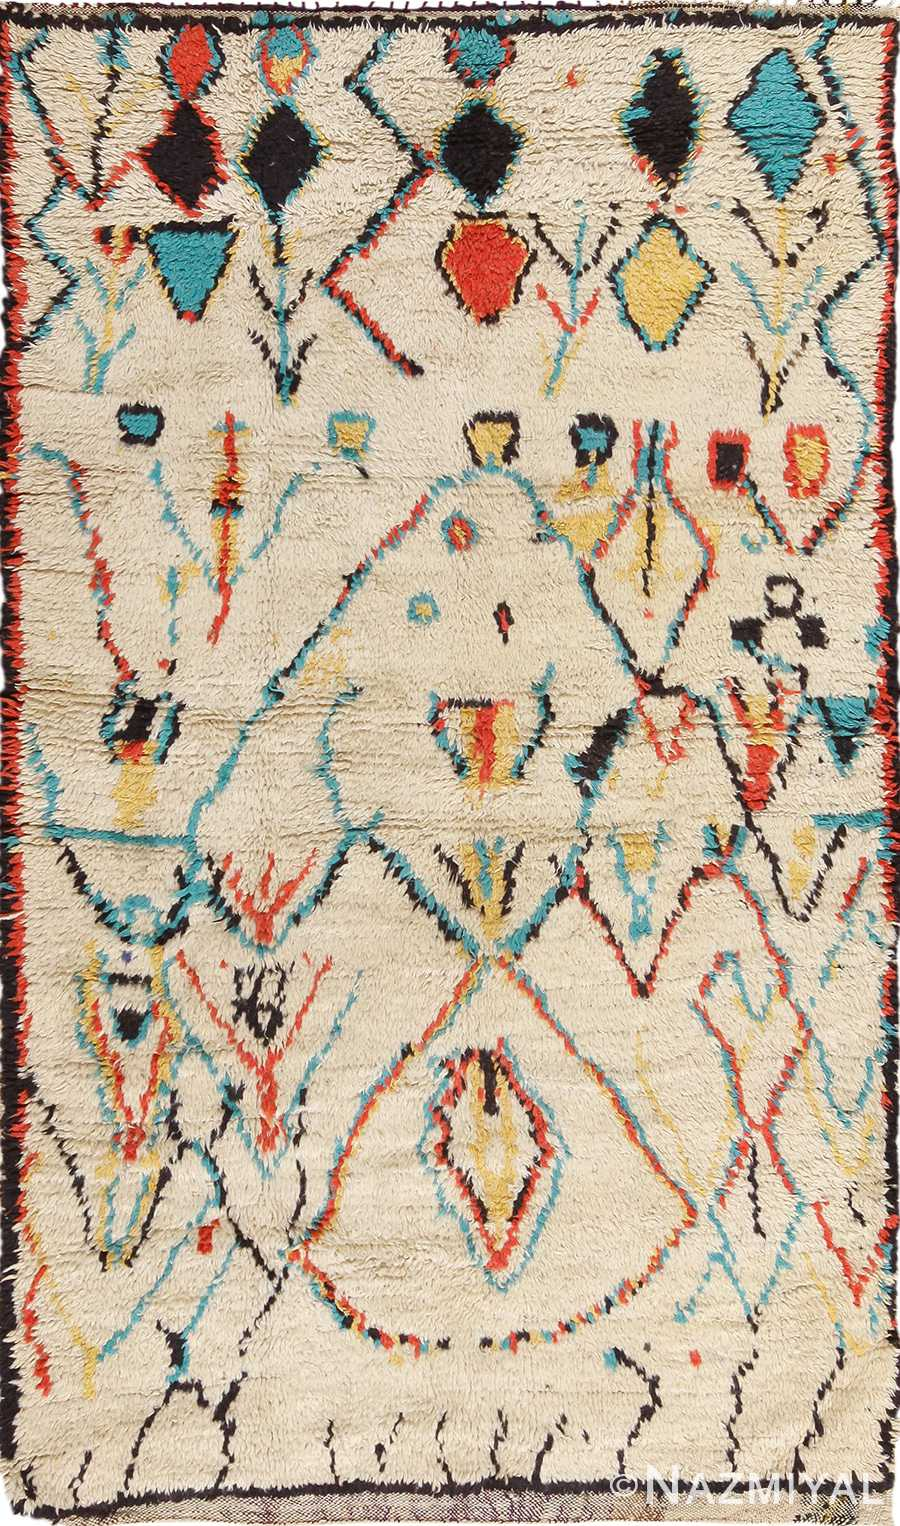 Colorful Small Size Vintage Moroccan Rug 49887 Nazmiyal